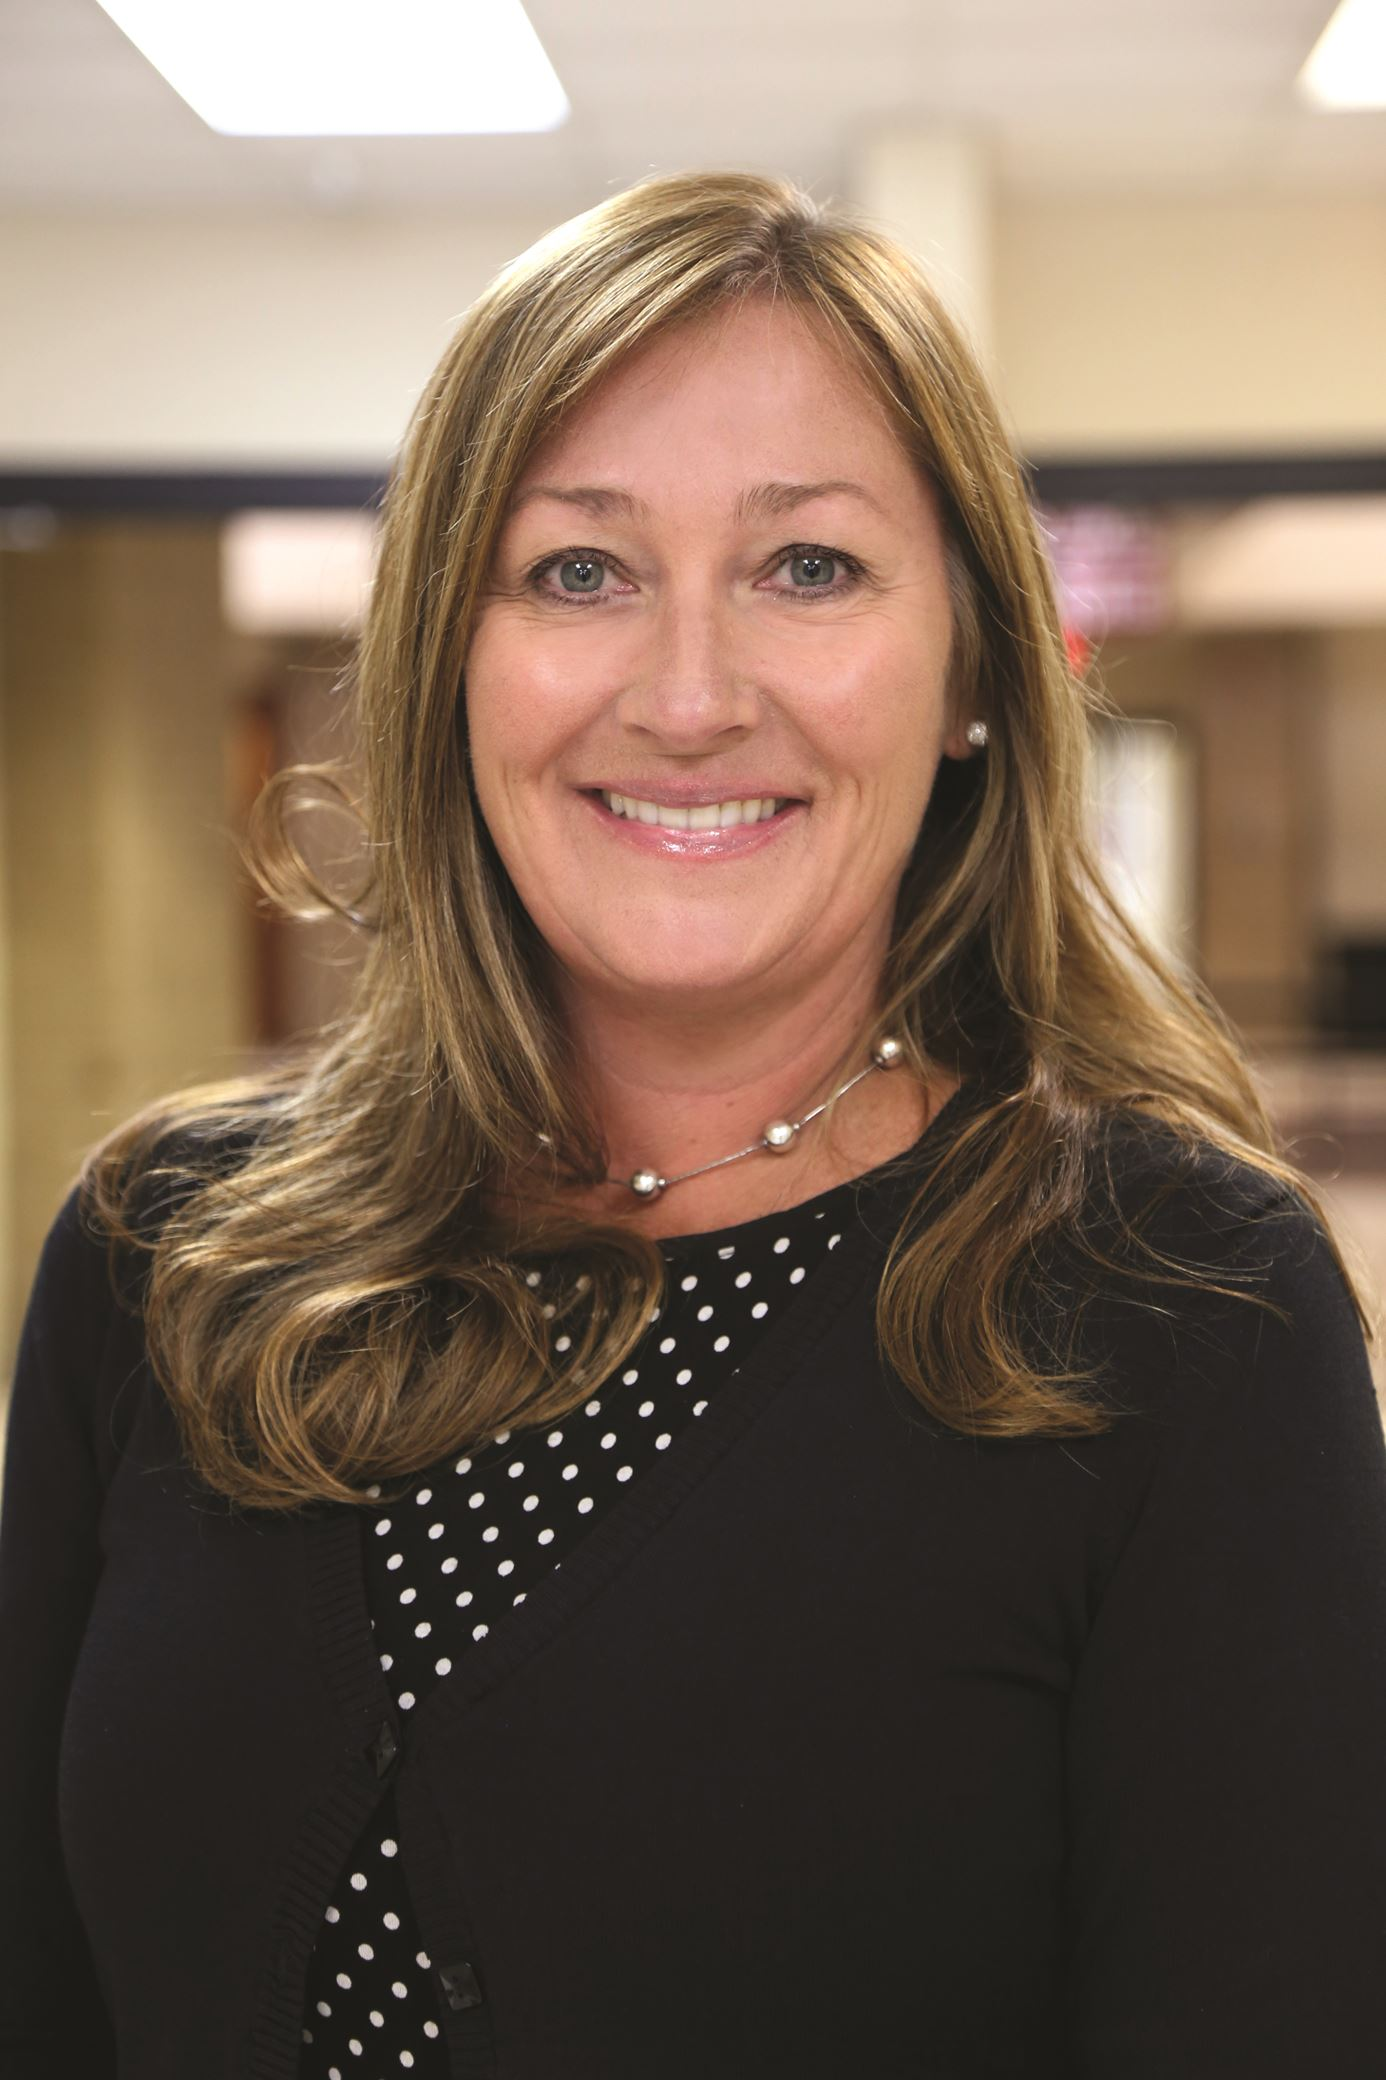 Image of Michelle Conner, Principal.